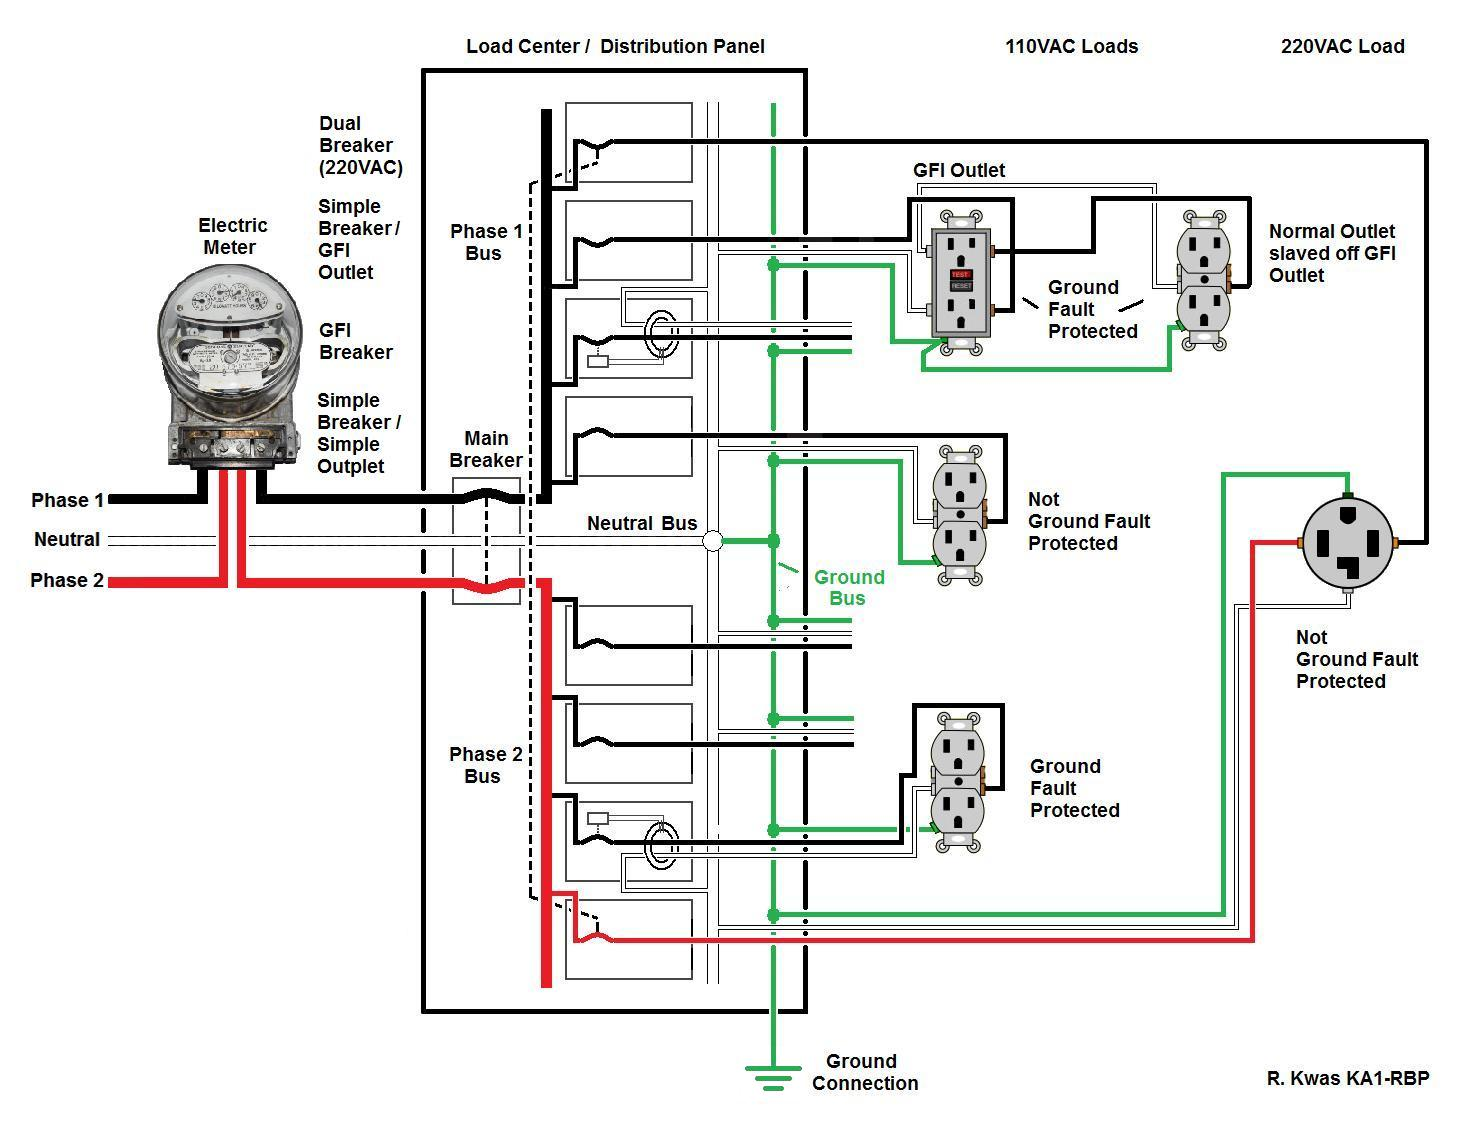 Ka1 Rbp Ground Fault Notes How To Wire A Circuit Interrupter Receptacle Other Faults Occur When The Current Returns Neutral Bus By Some Path Than Conductor Of Since This Will Be Means